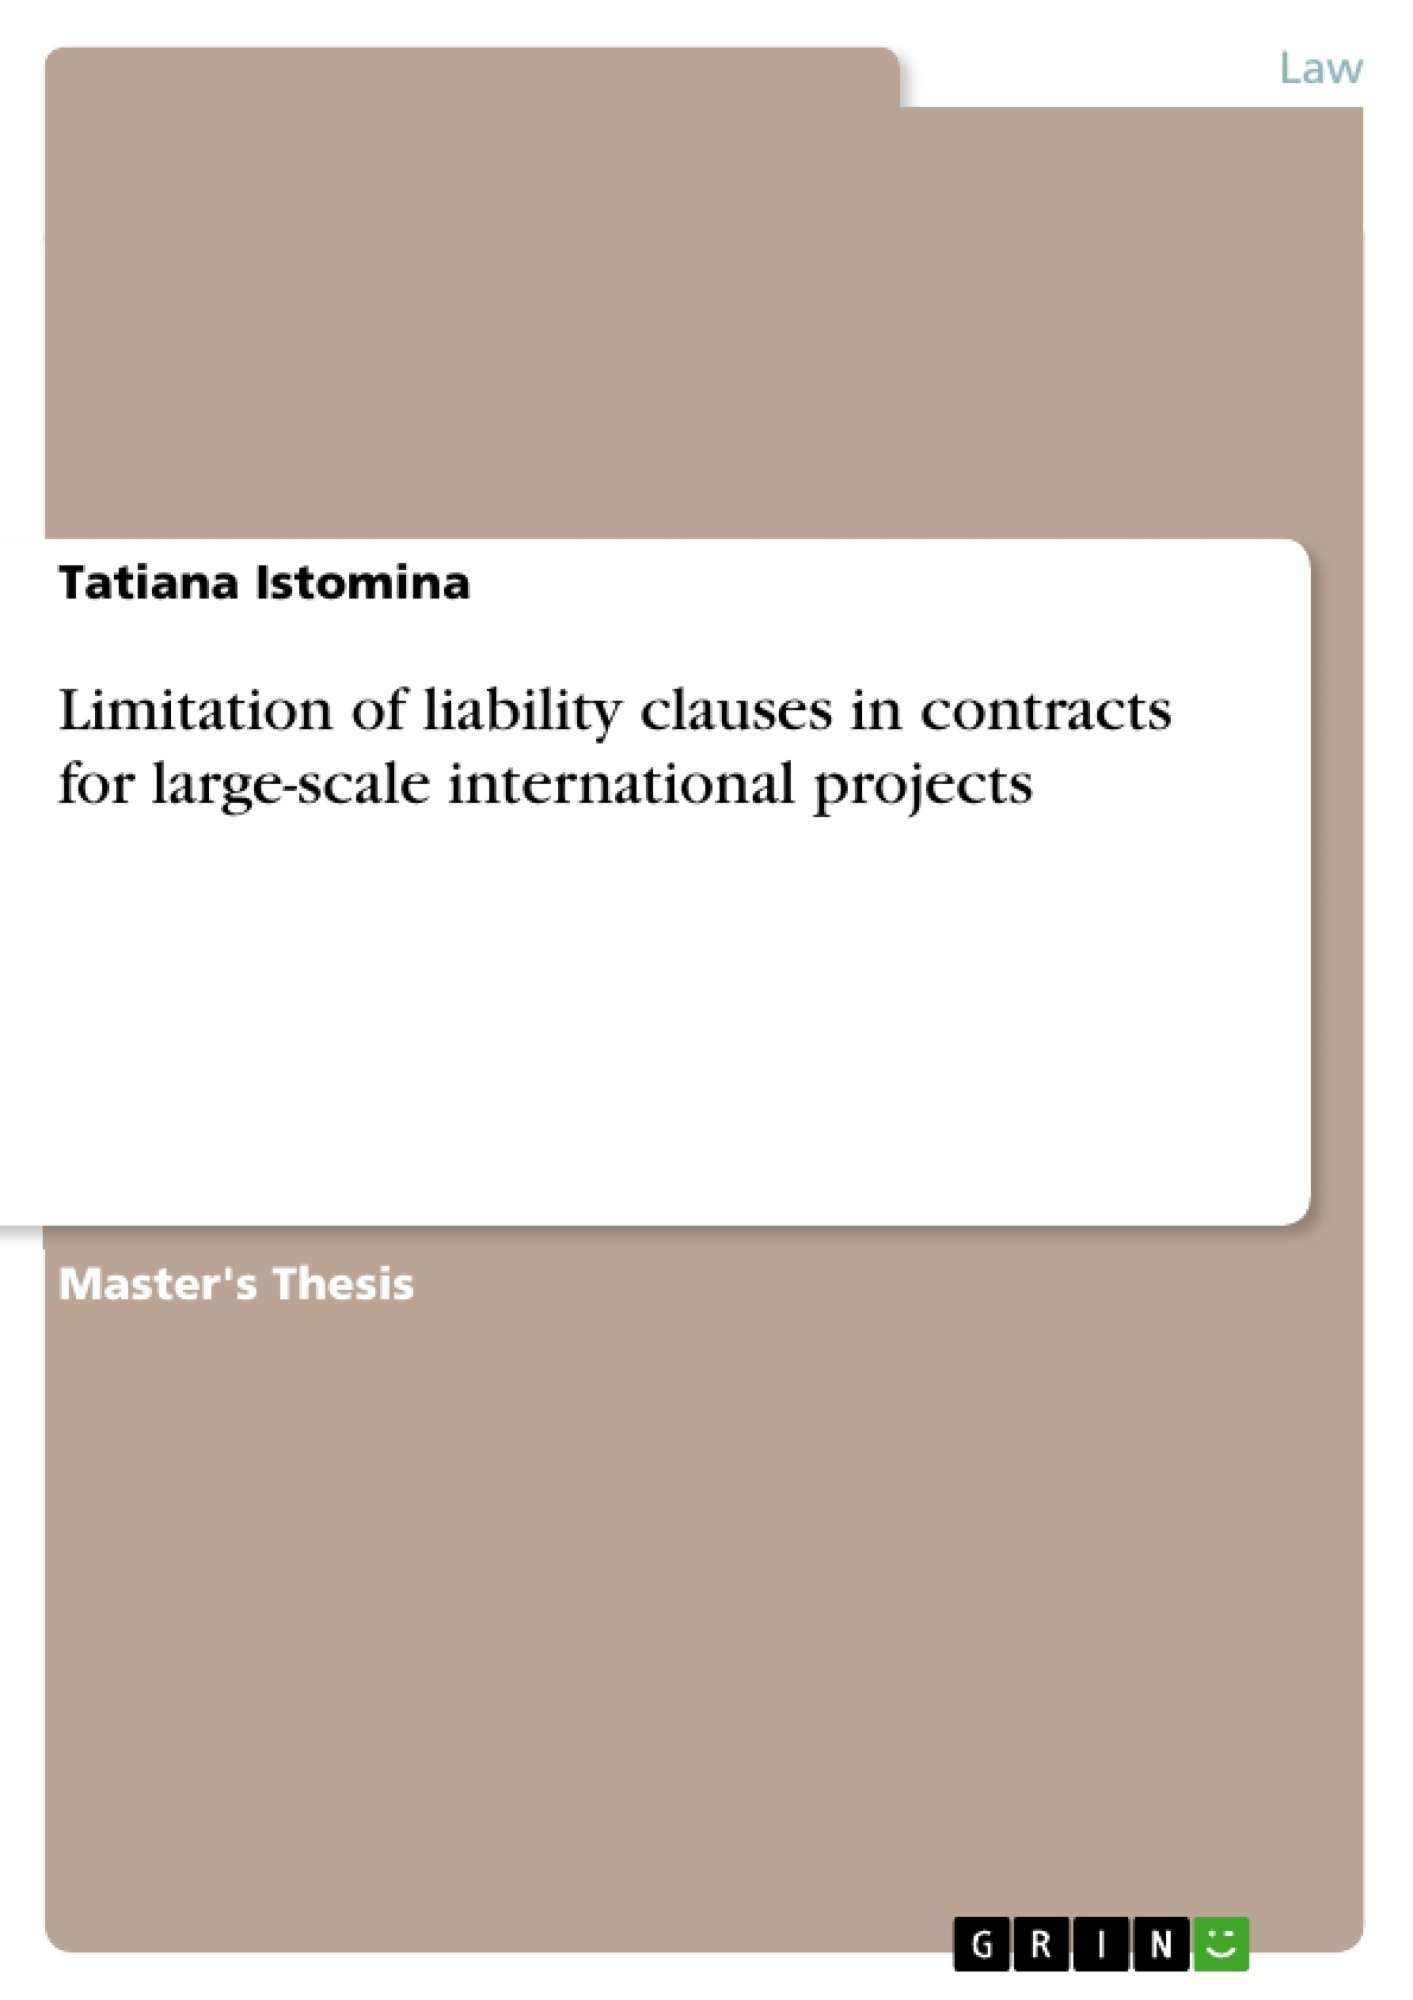 Title: Limitation of liability clauses in contracts for large-scale international projects